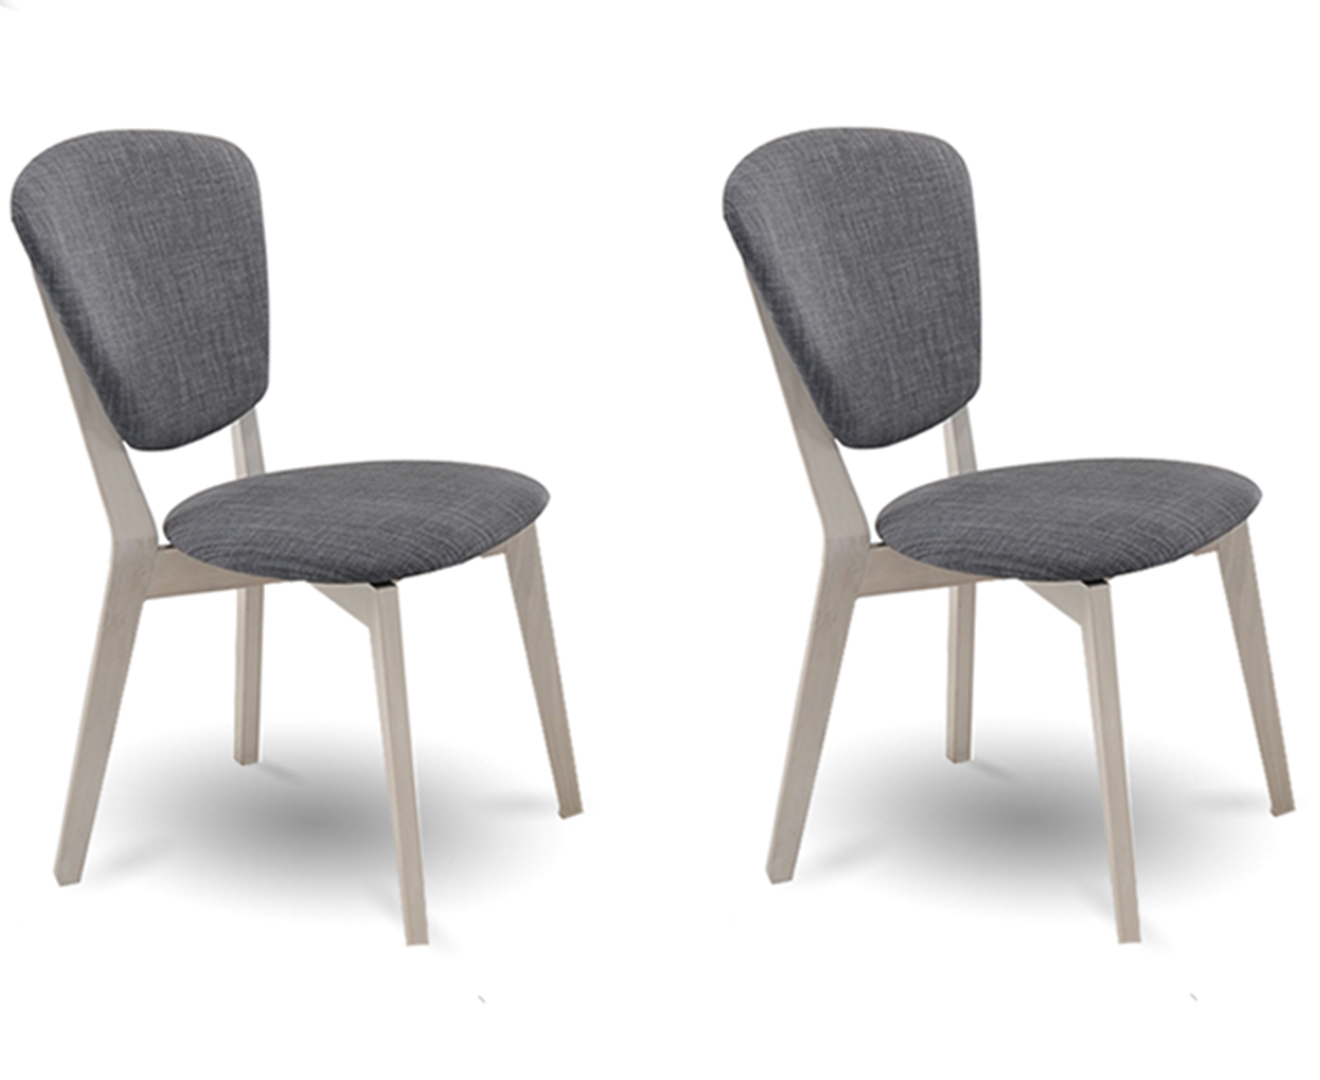 Set of 2 Dining Chair Solid hardwood White Wash